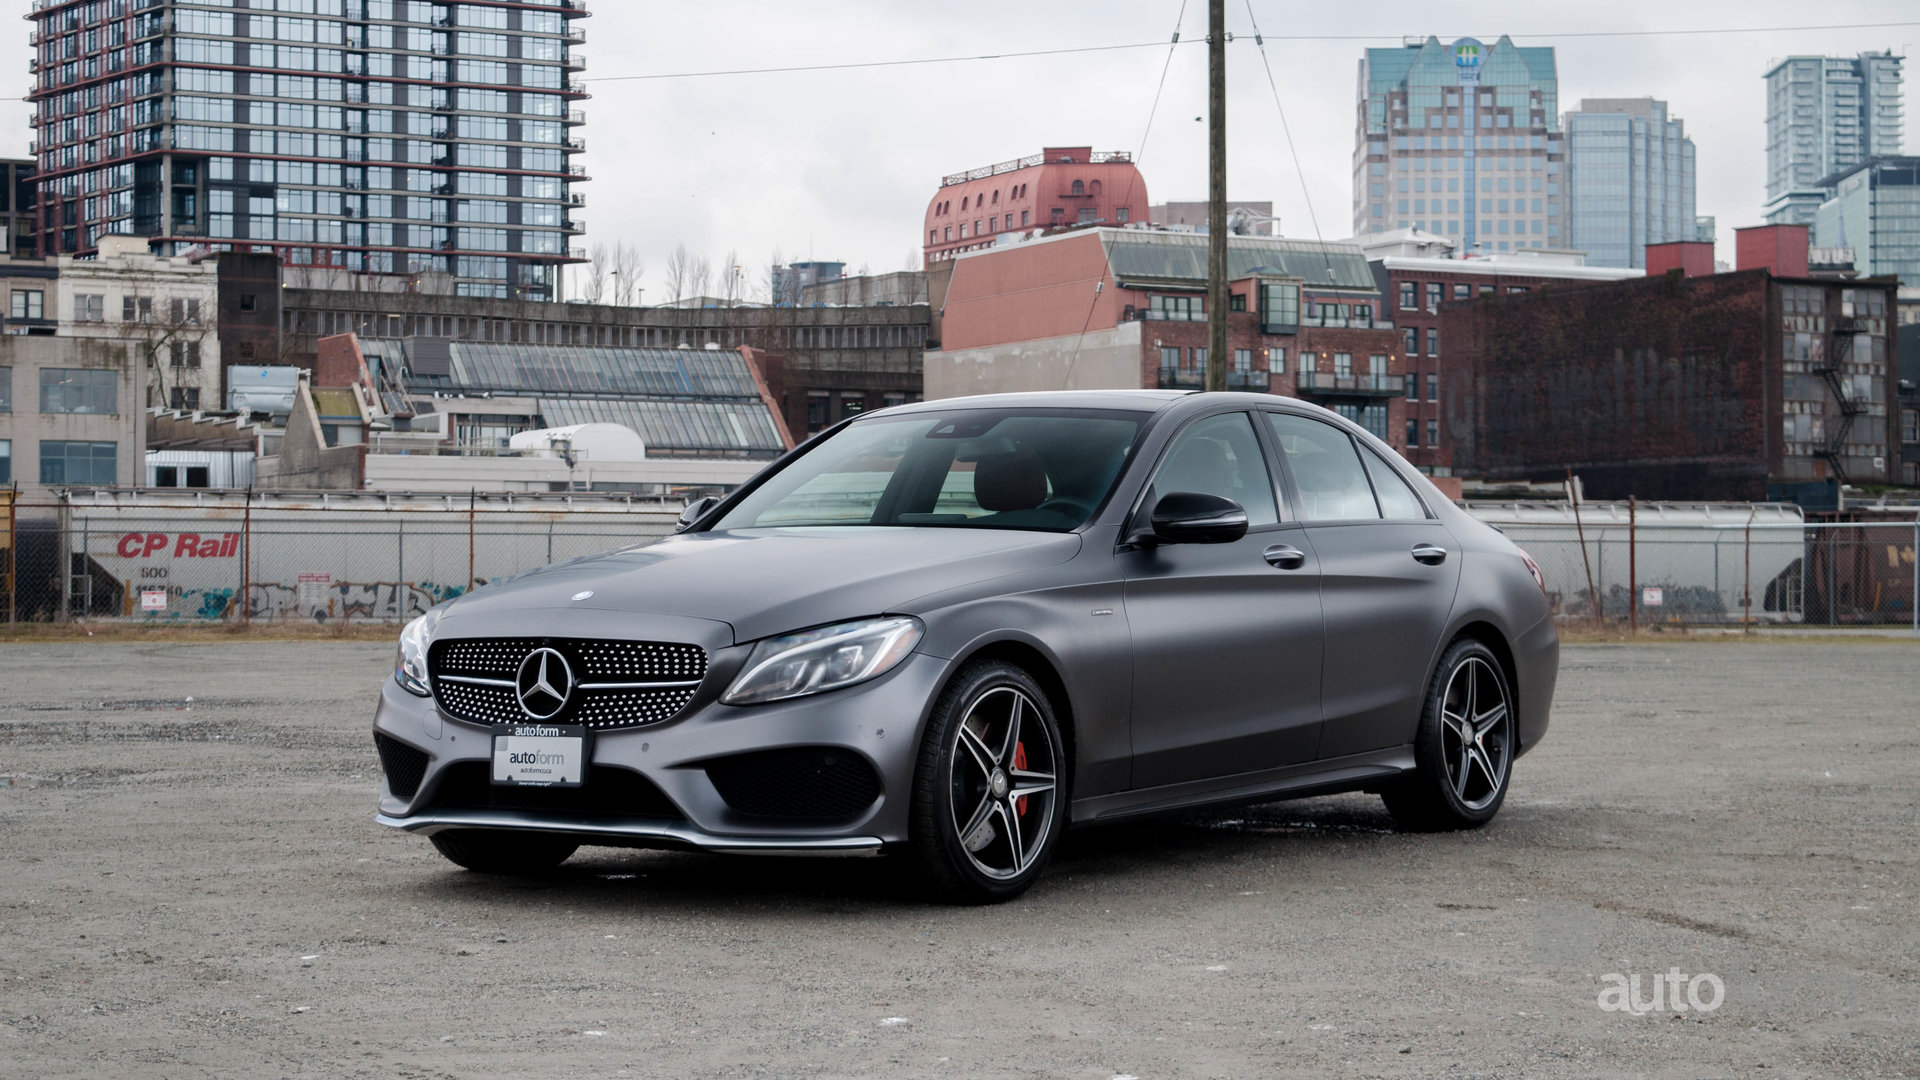 2016 Mercedes-Benz C450 AMG for sale #82567 | MCG